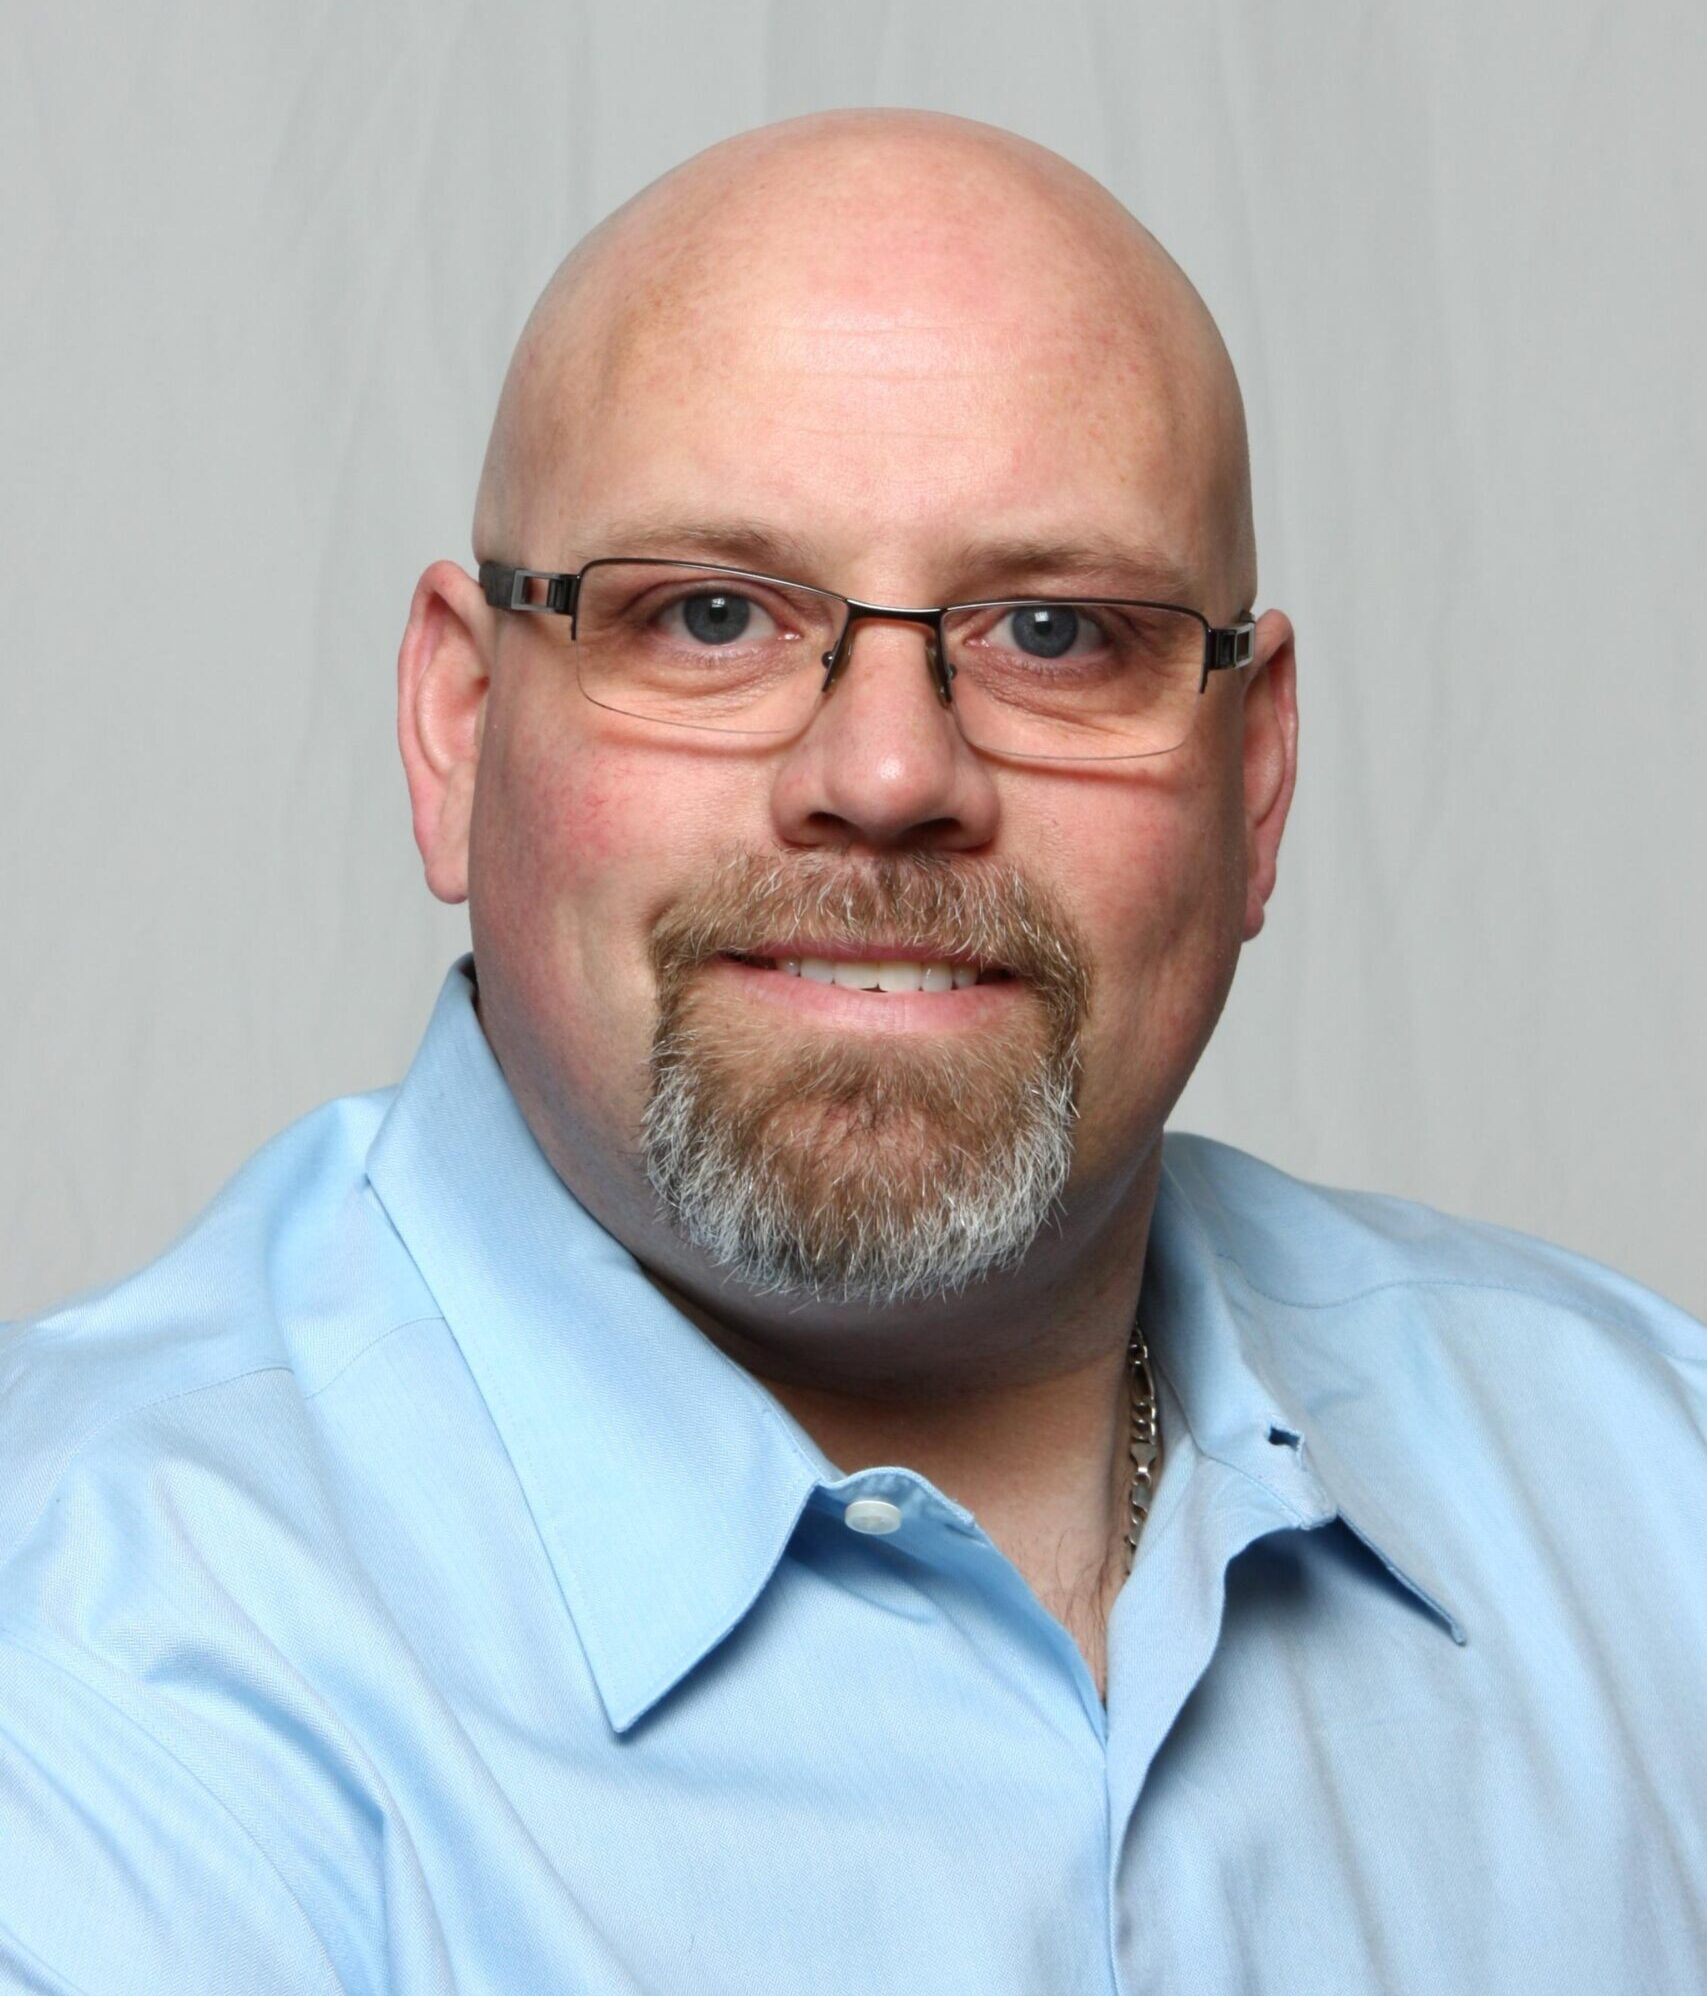 Chad Richardson, Ontario Sales Manager, Tool Division, ToolWEB